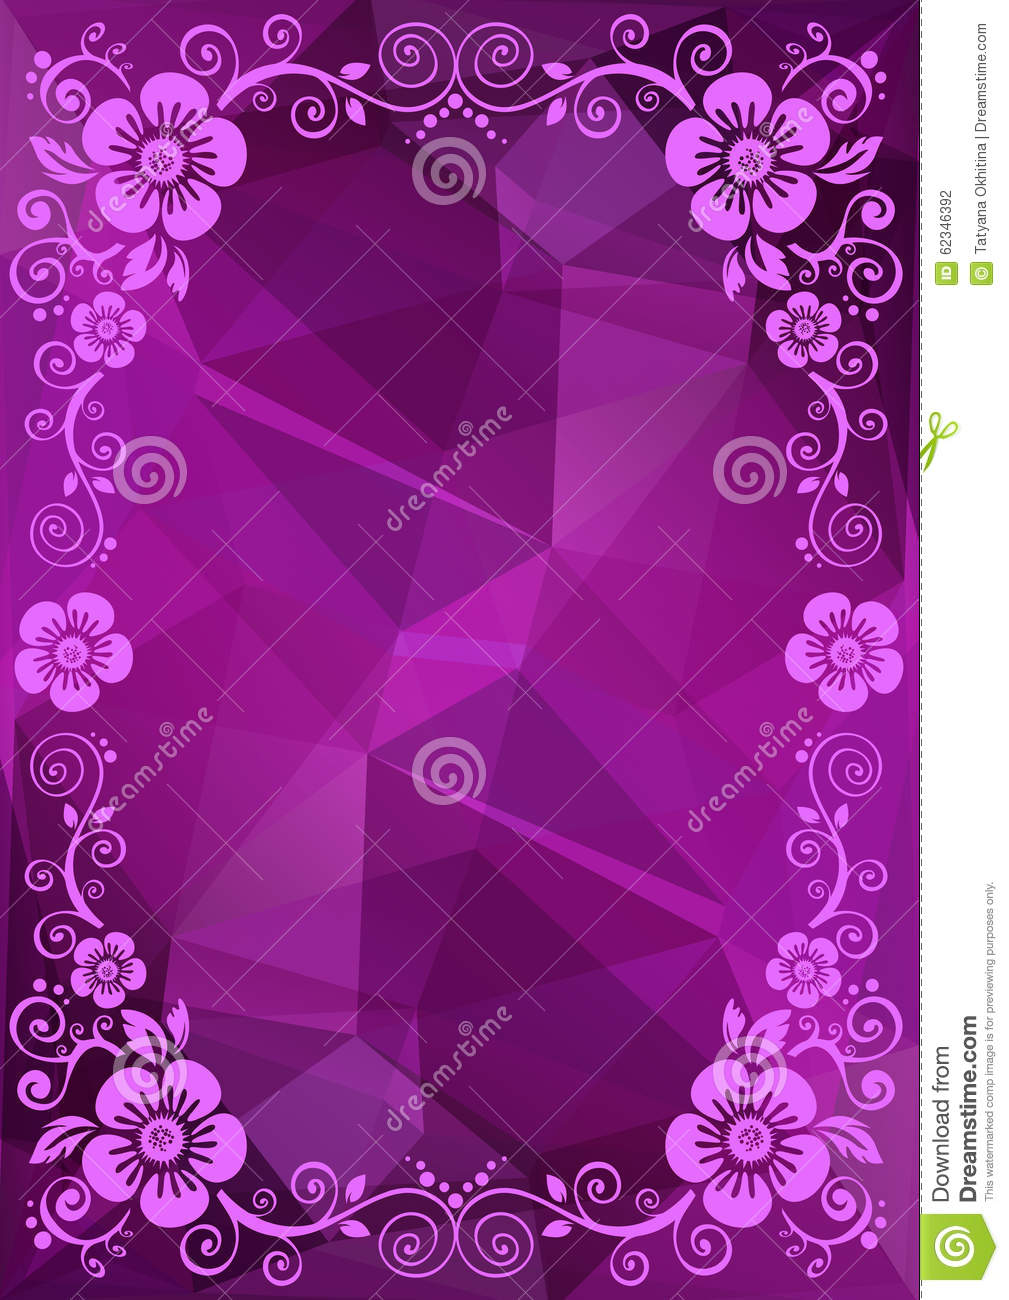 Purple Polygonal Abstract Background: Purple Floral Border Stock Vector. Illustration Of Polygon